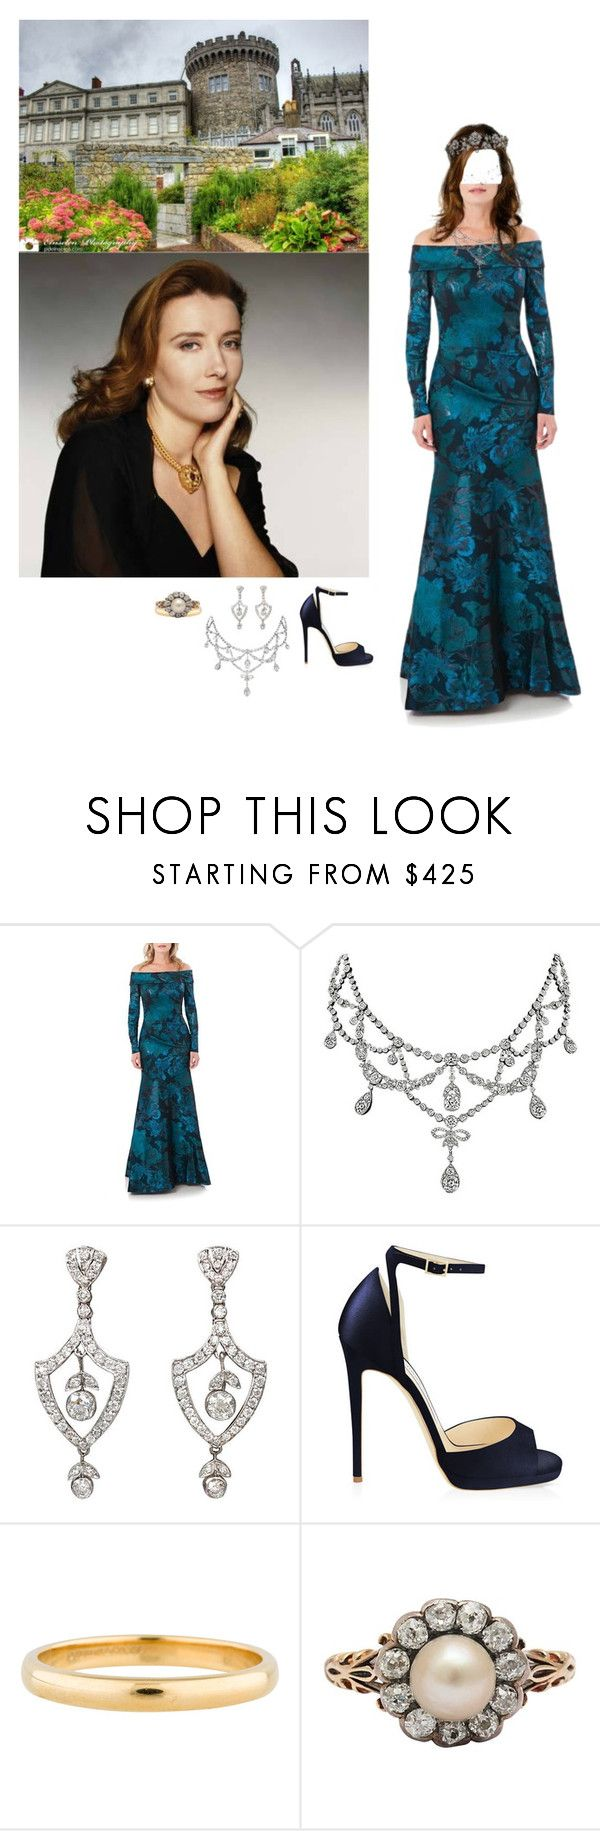 """""""An official portrait of Queen Mary released by Dublin Castle to celebrate her 57th birthday"""" by princessofleinster ❤ liked on Polyvore featuring Theia, Jimmy Choo and Tiffany & Co."""